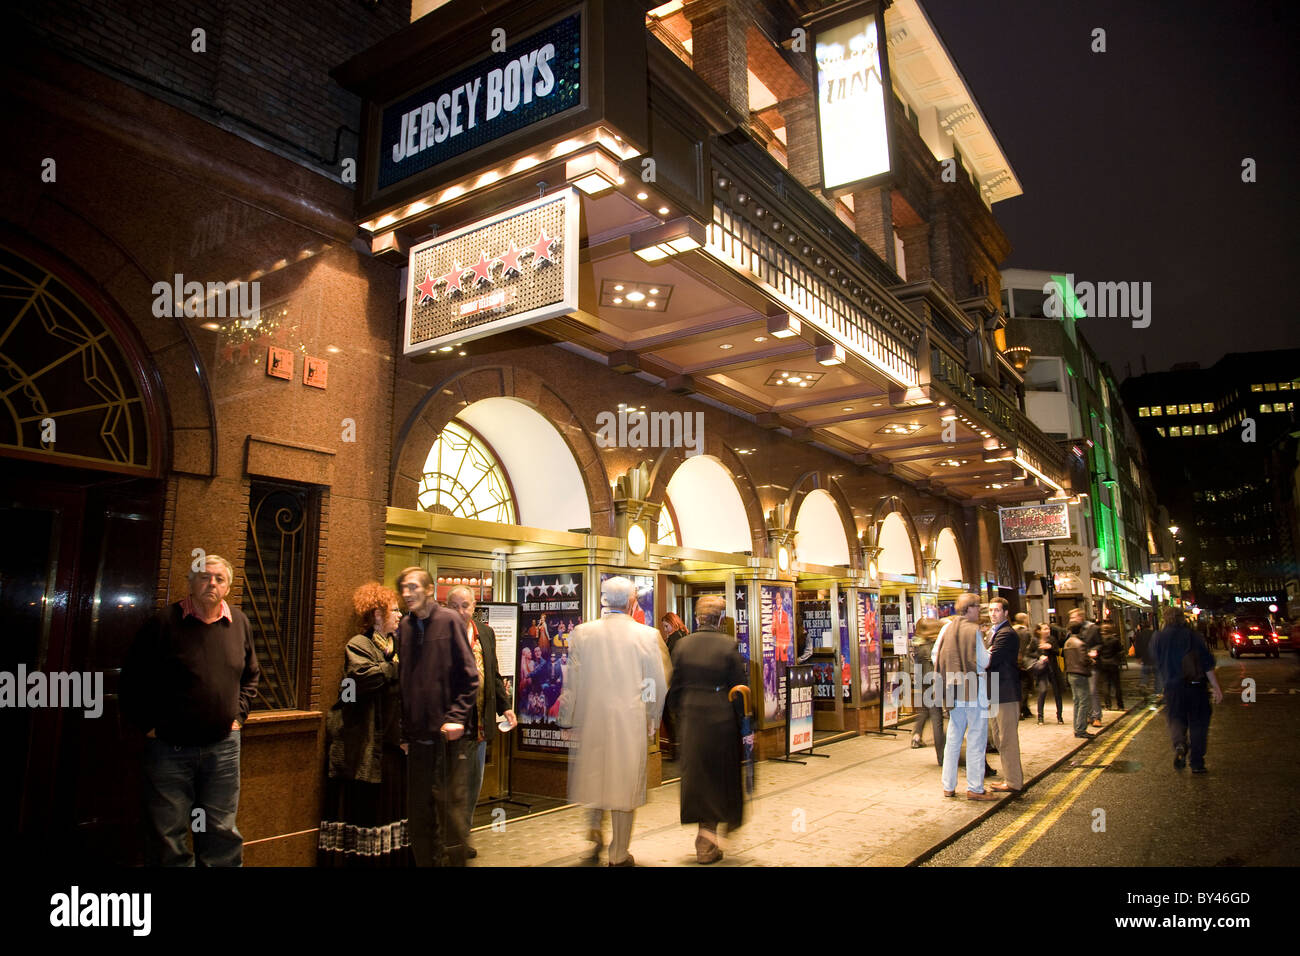 Prince Edward theatre Jersey Boys West End theatre in theatreland West End Central London UK. Photo:Jeff Gilbert - Stock Image